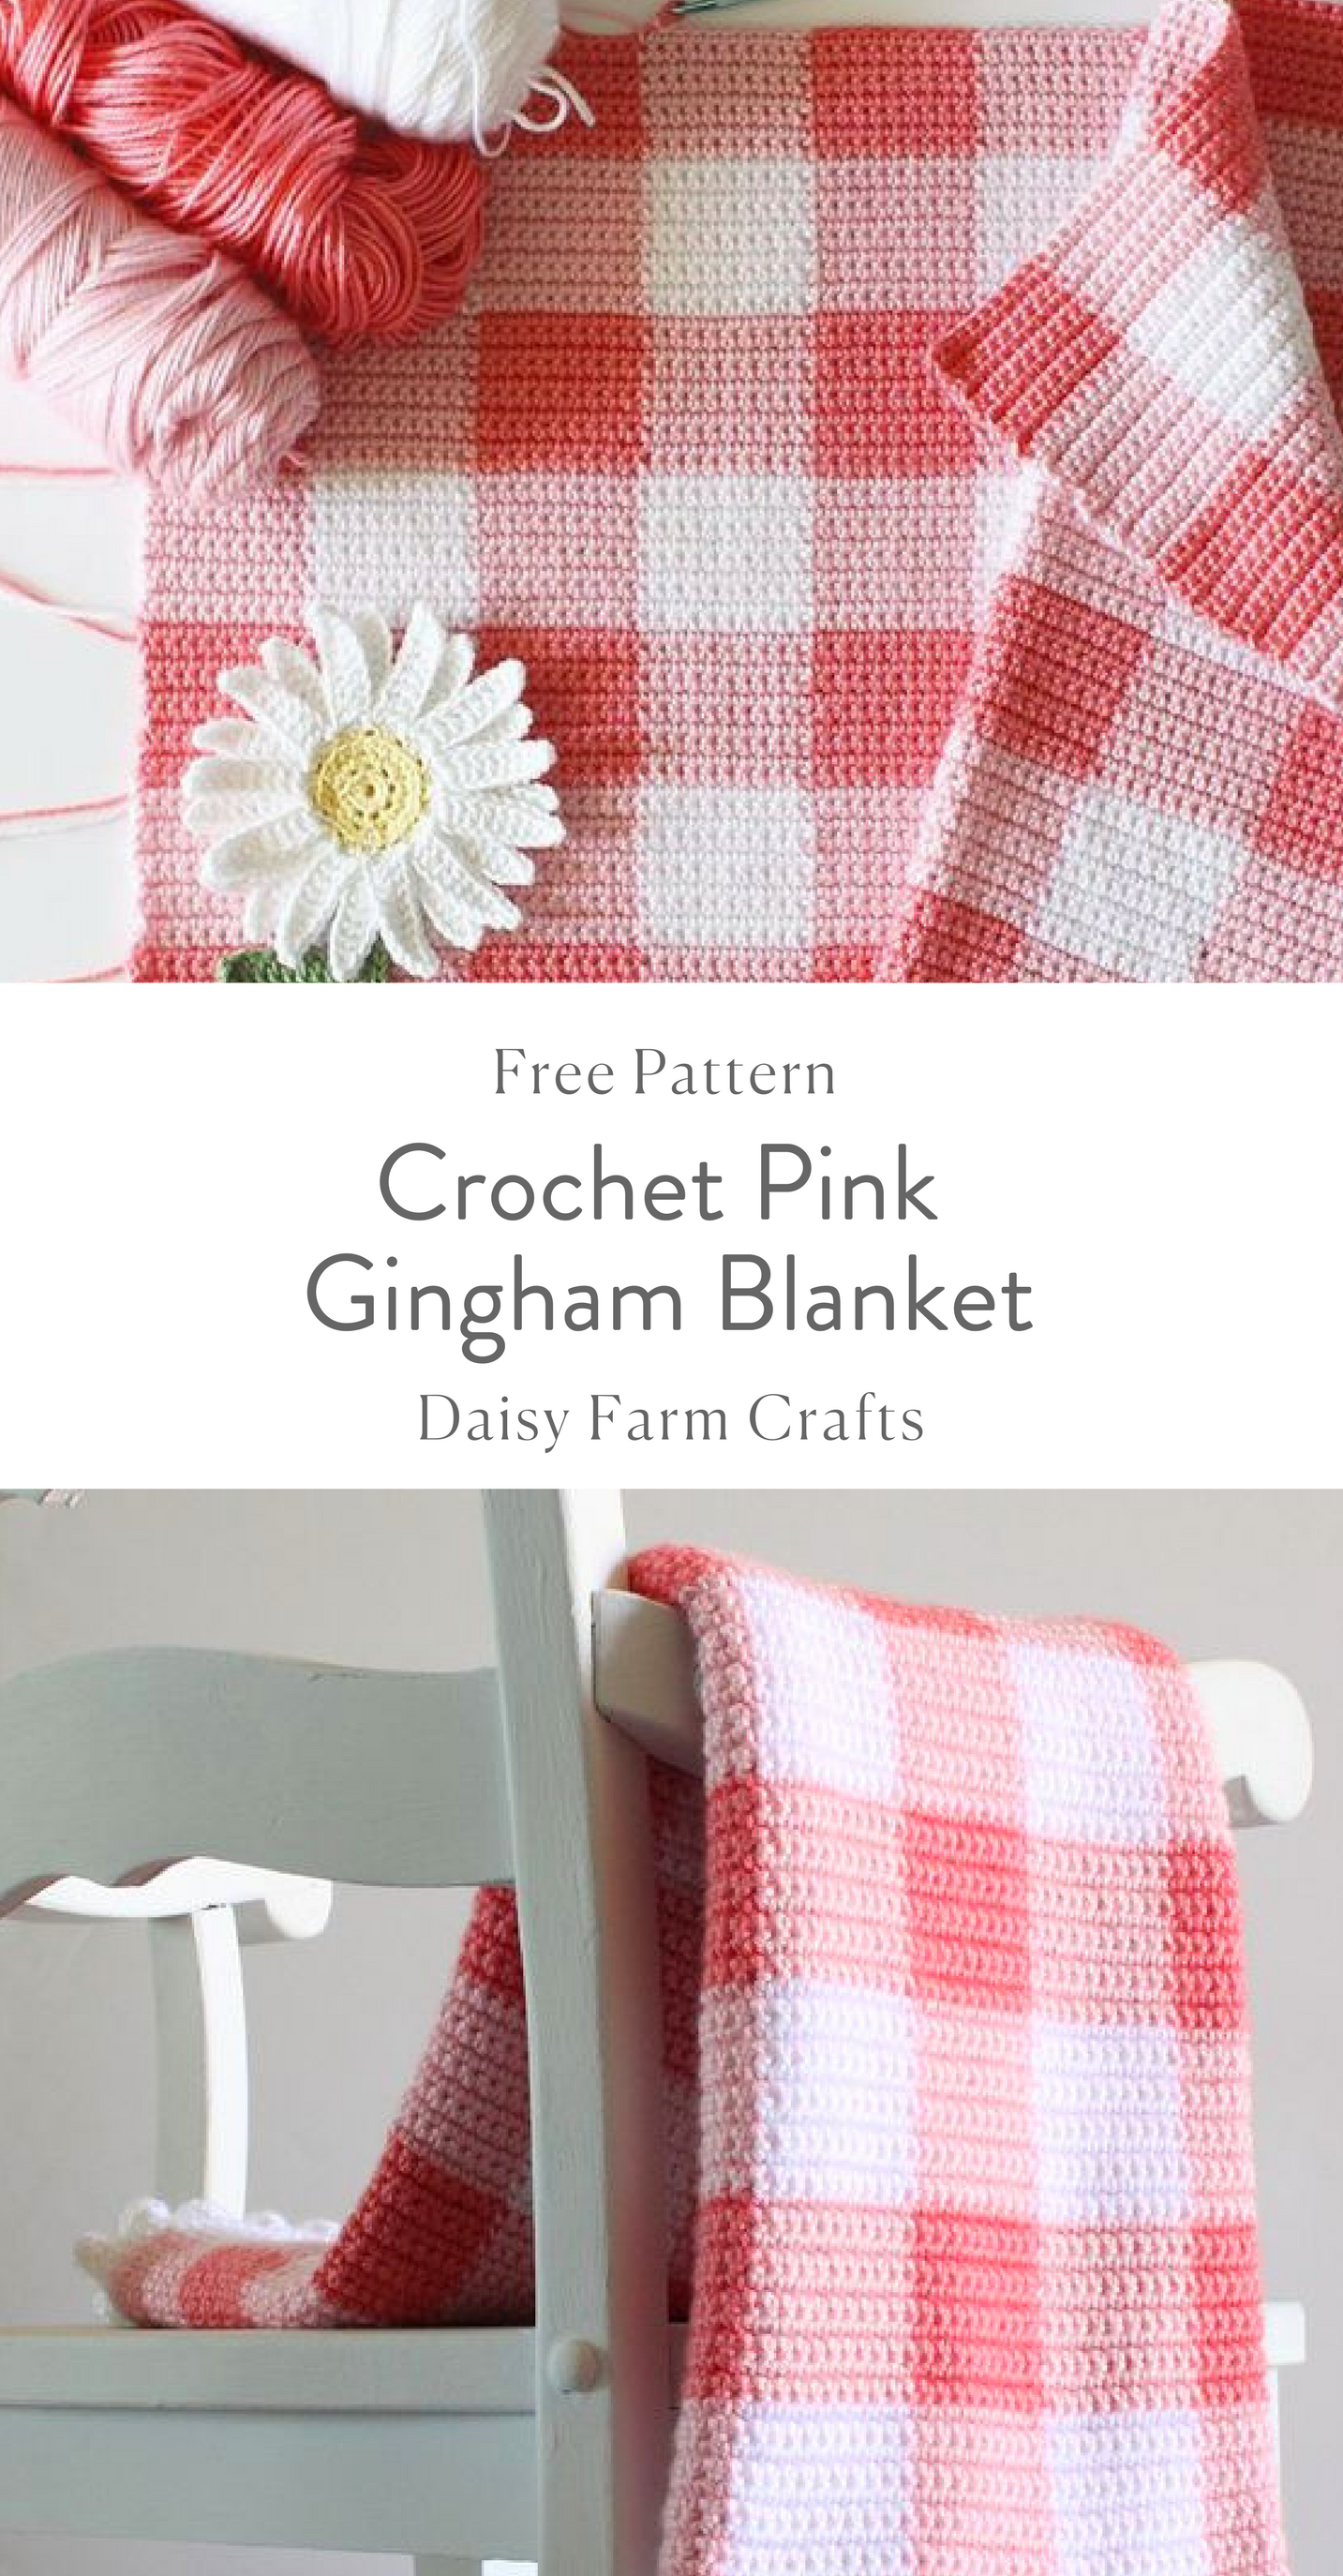 Crochet Pink Gingham Blanket - Free Pattern | Yarn | Pinterest ...